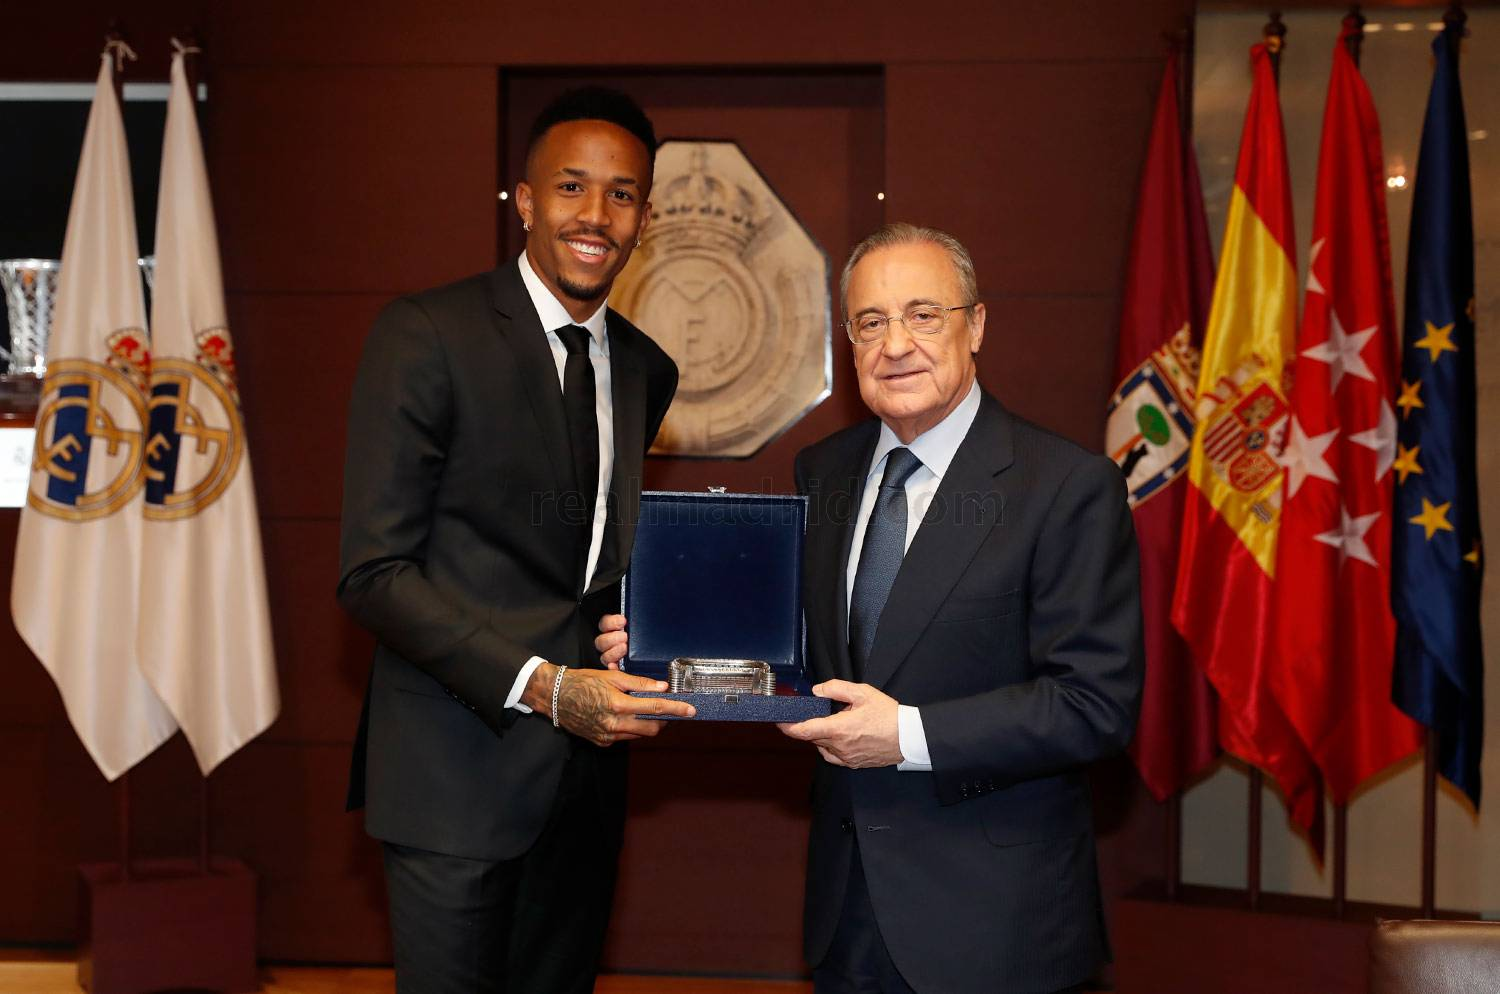 ¿Cuánto mide Eder Militao? - Real height _pca9505_20190710014041